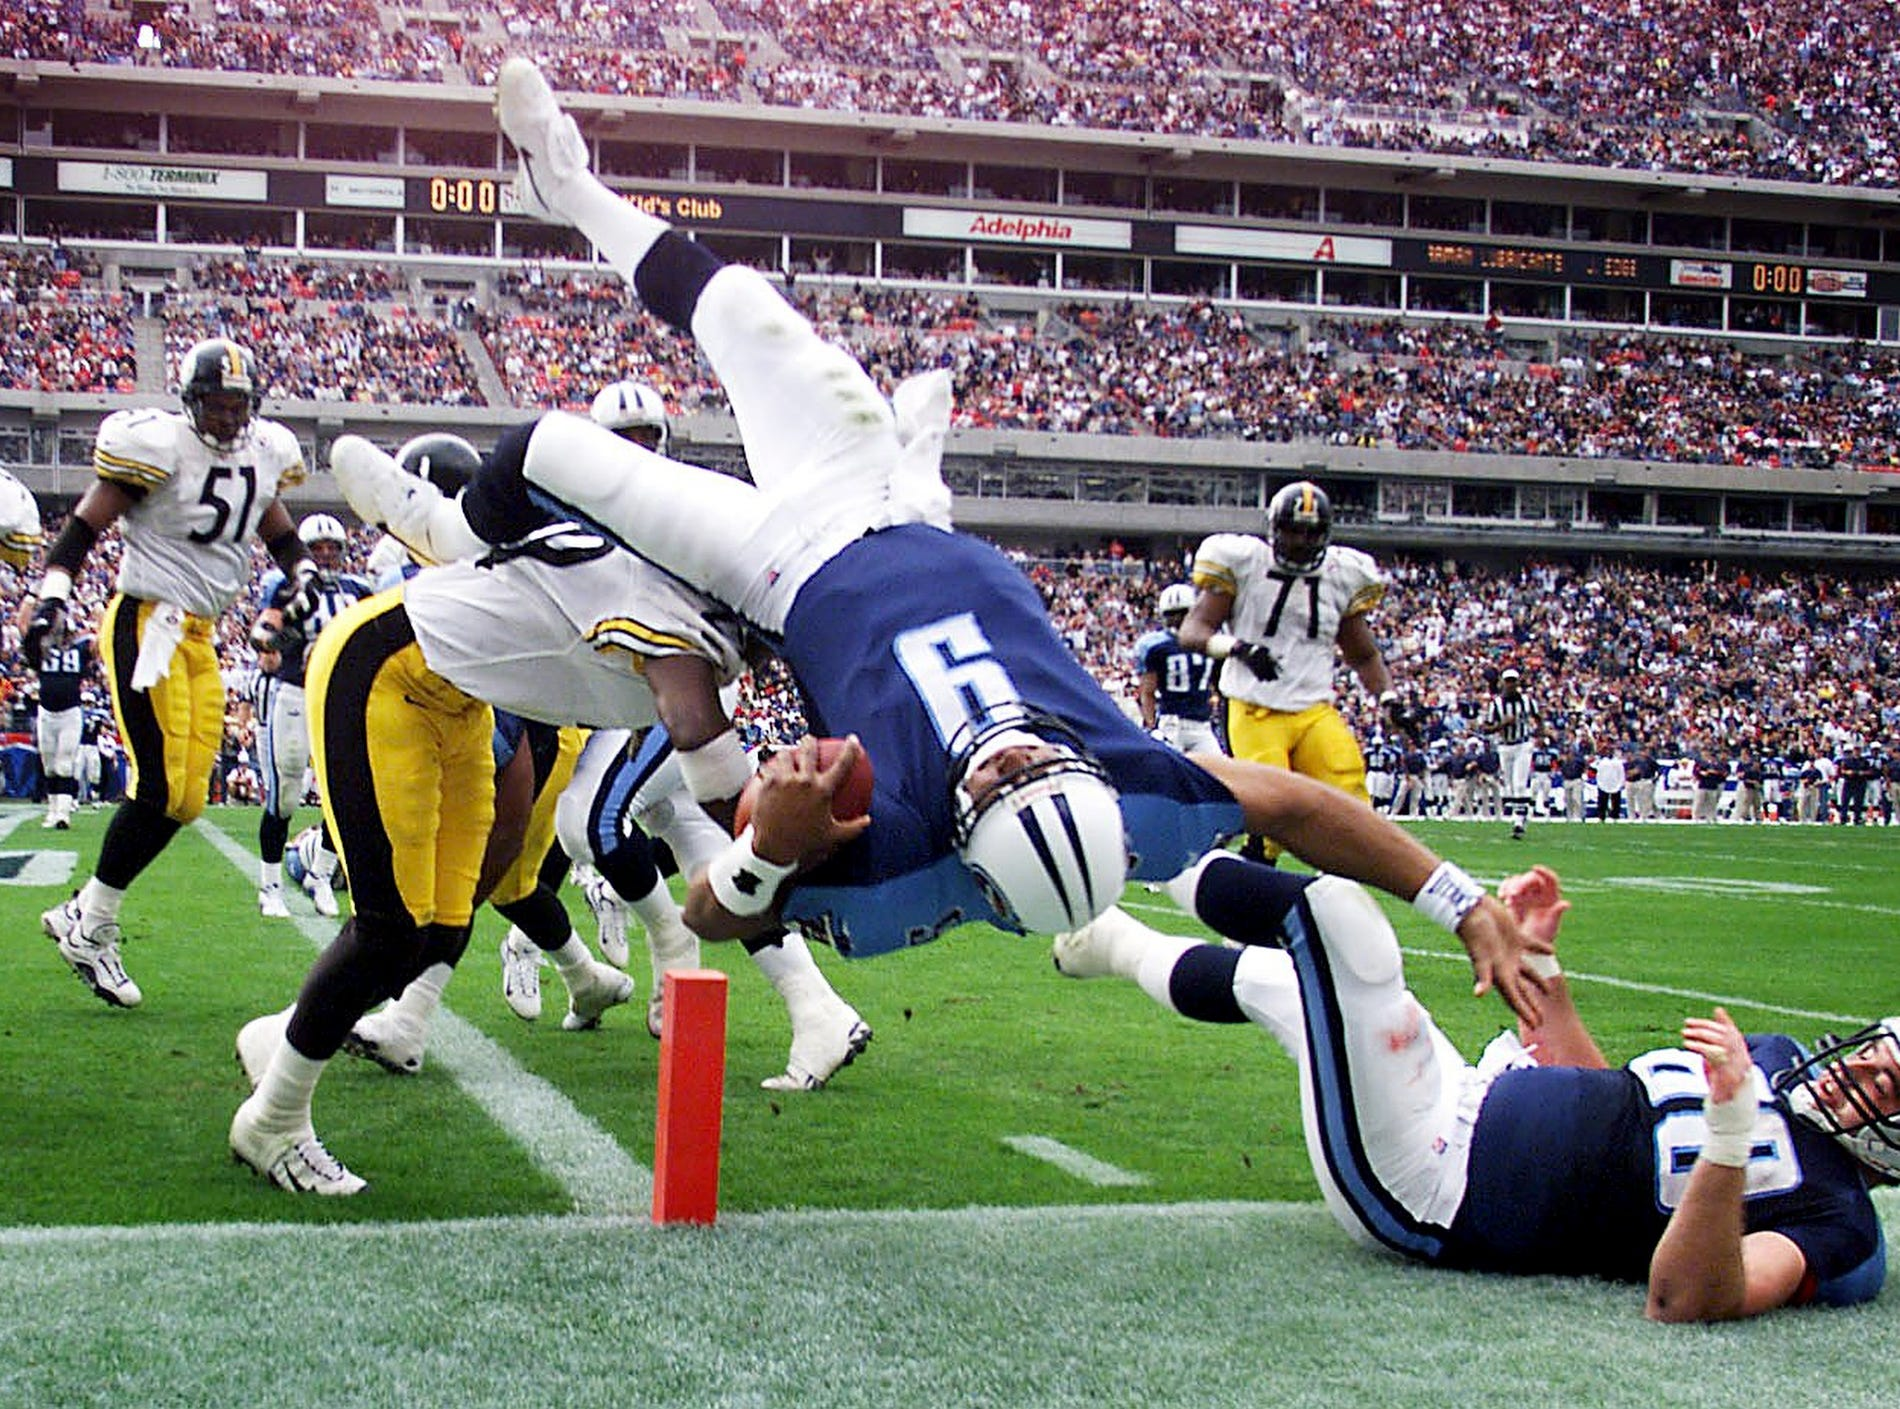 Tennessee Titans quarterback Steve McNair (9) lunges into the end zone at the end of the first quarter against the Pittsburgh Steelers Nov. 21, 1999. The Titans went on to a 16-10 victory at home.